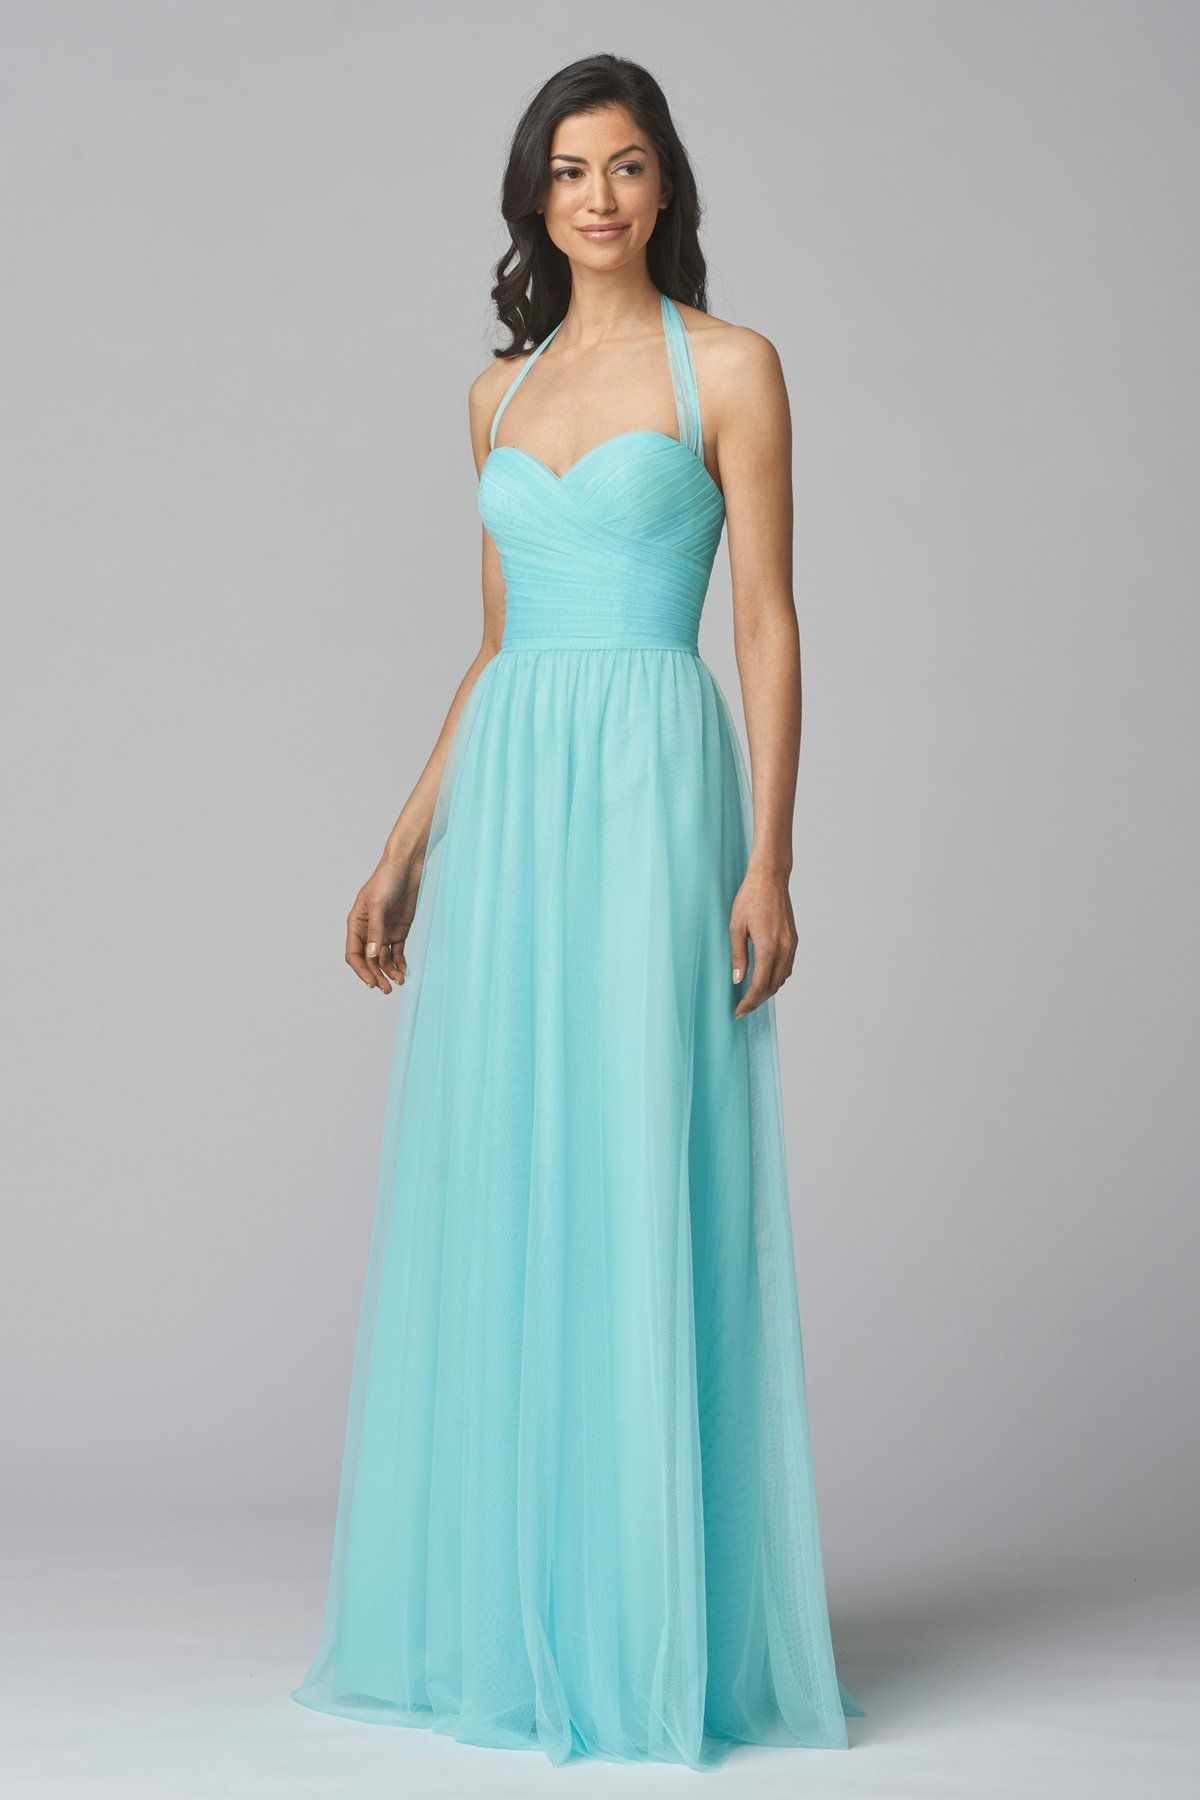 Mia grace bridal offers a beautiful selection of the latest styles mia grace bridal offers a beautiful selection of the latest styles of bridesmaid dresses ombrellifo Image collections